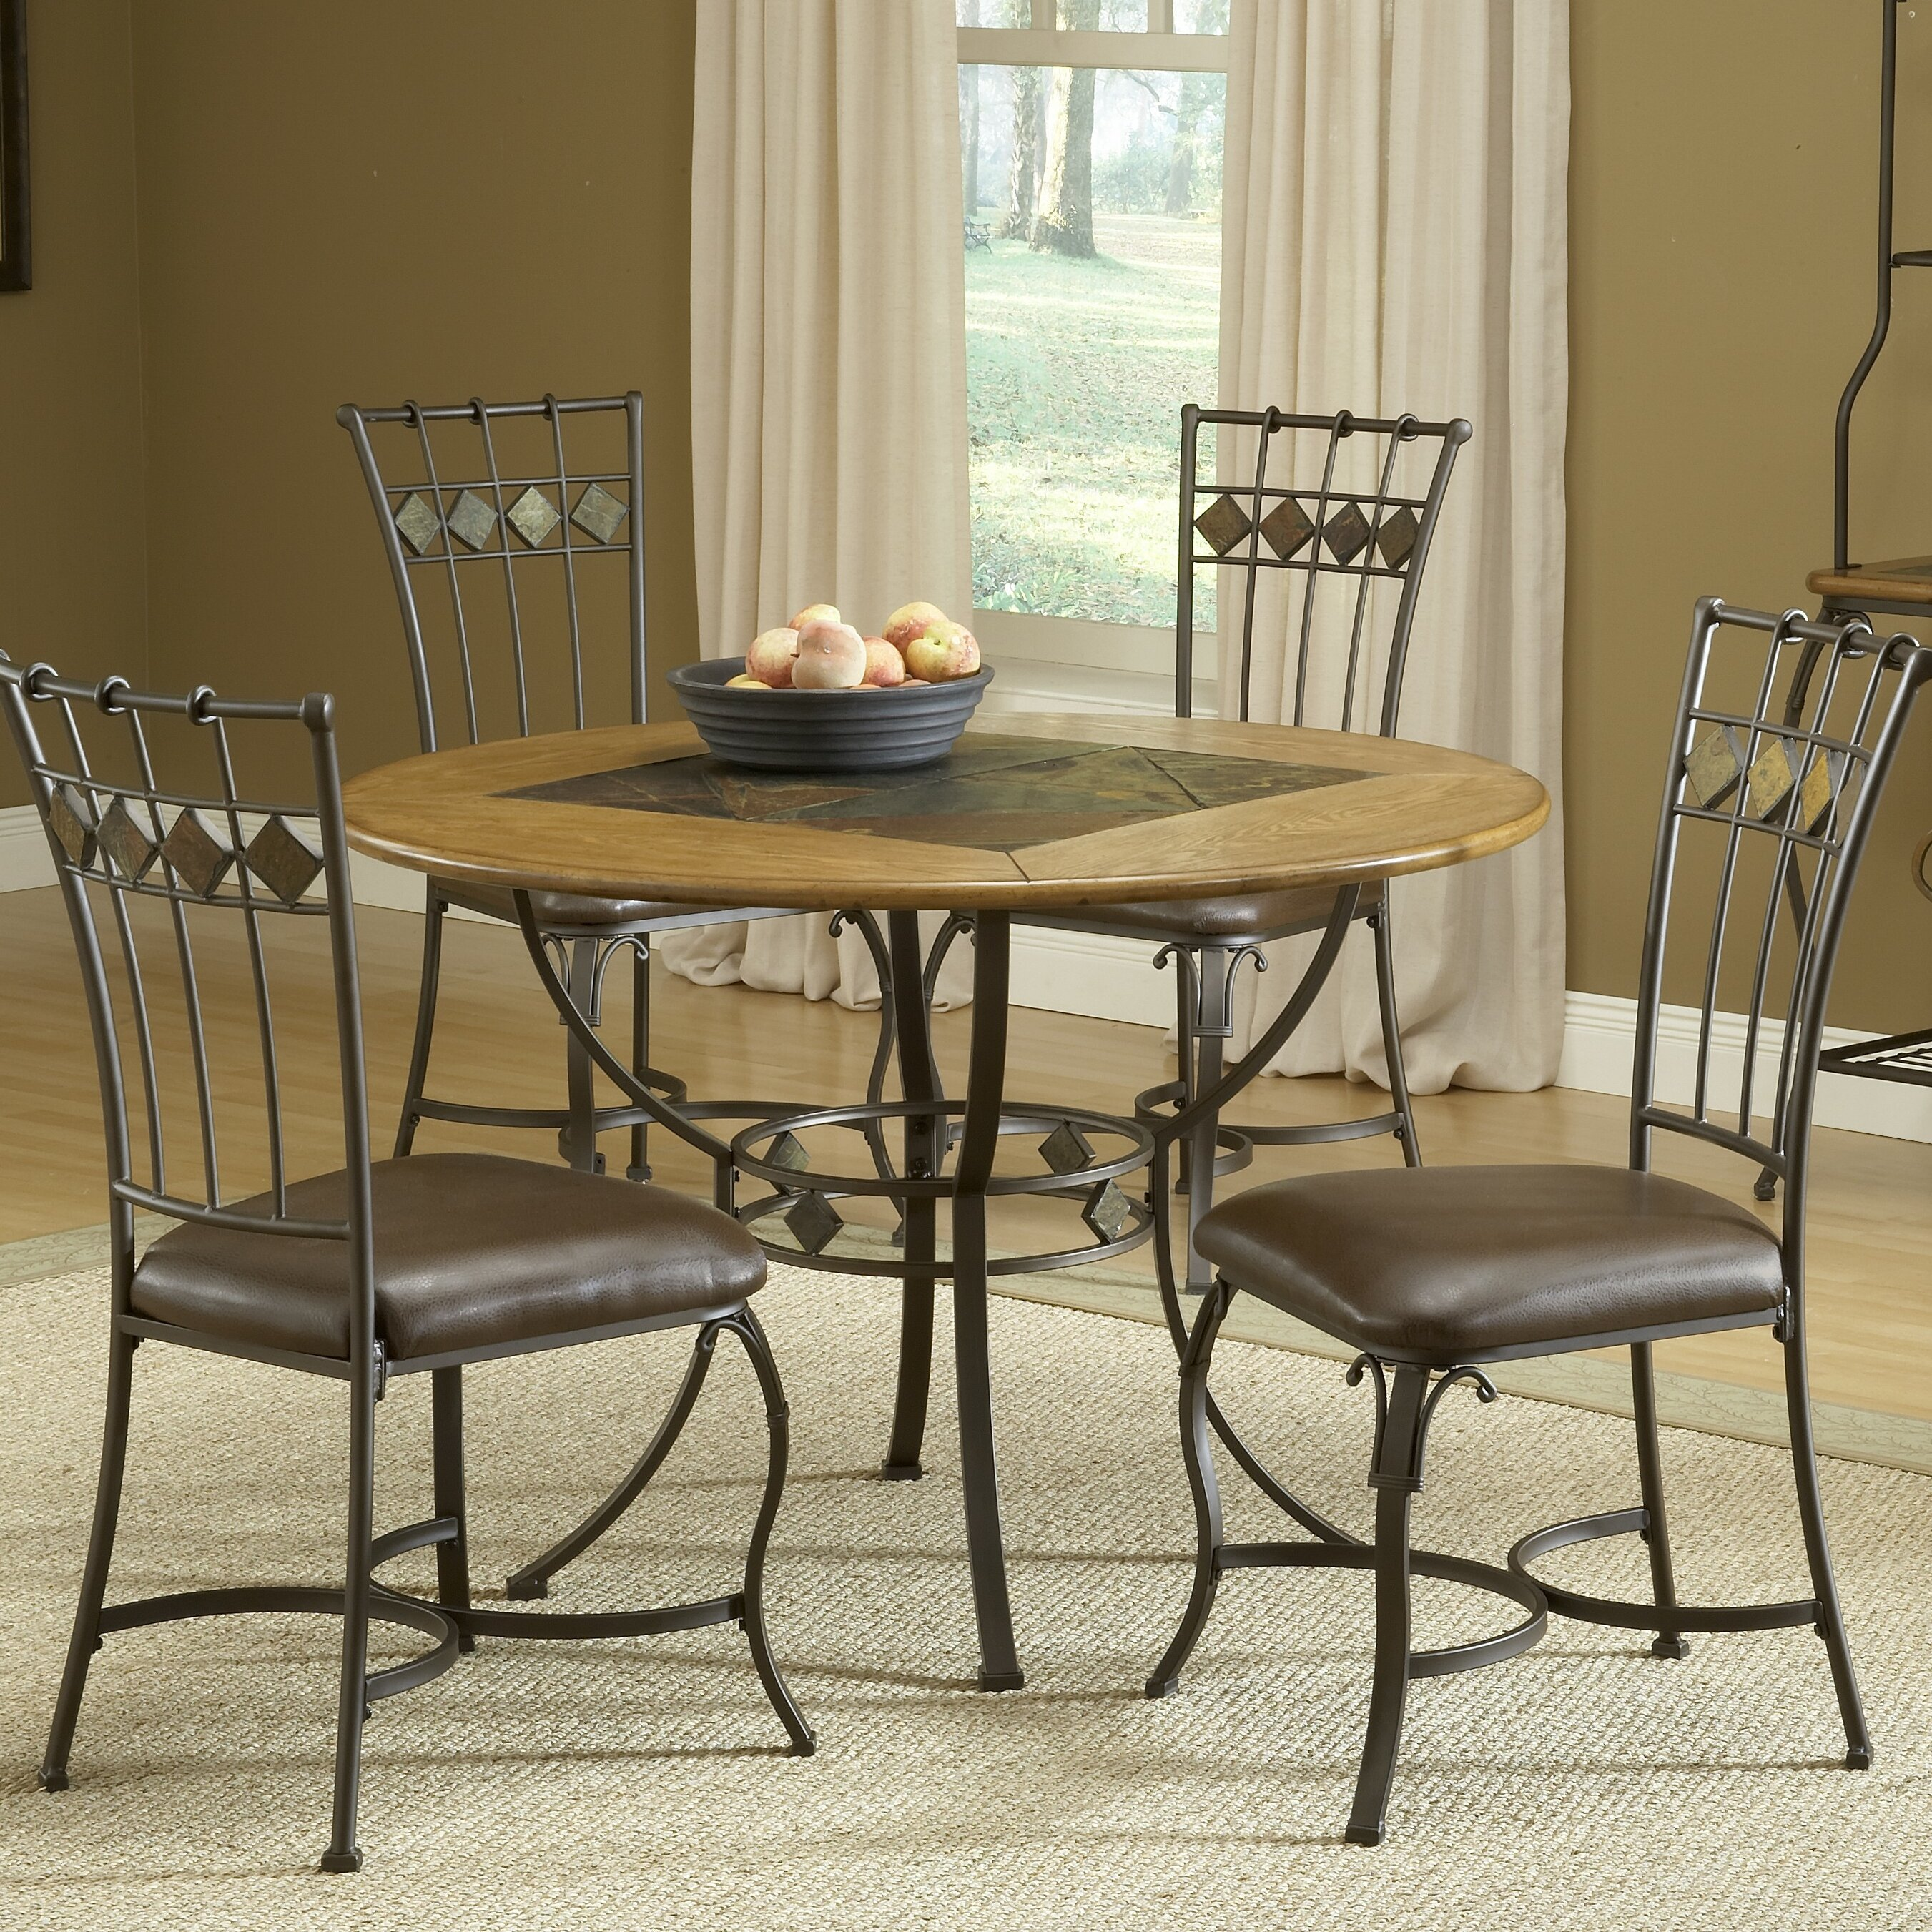 Red Barrel Studio Boyers 5 Piece Dining Set Reviews Wayfair